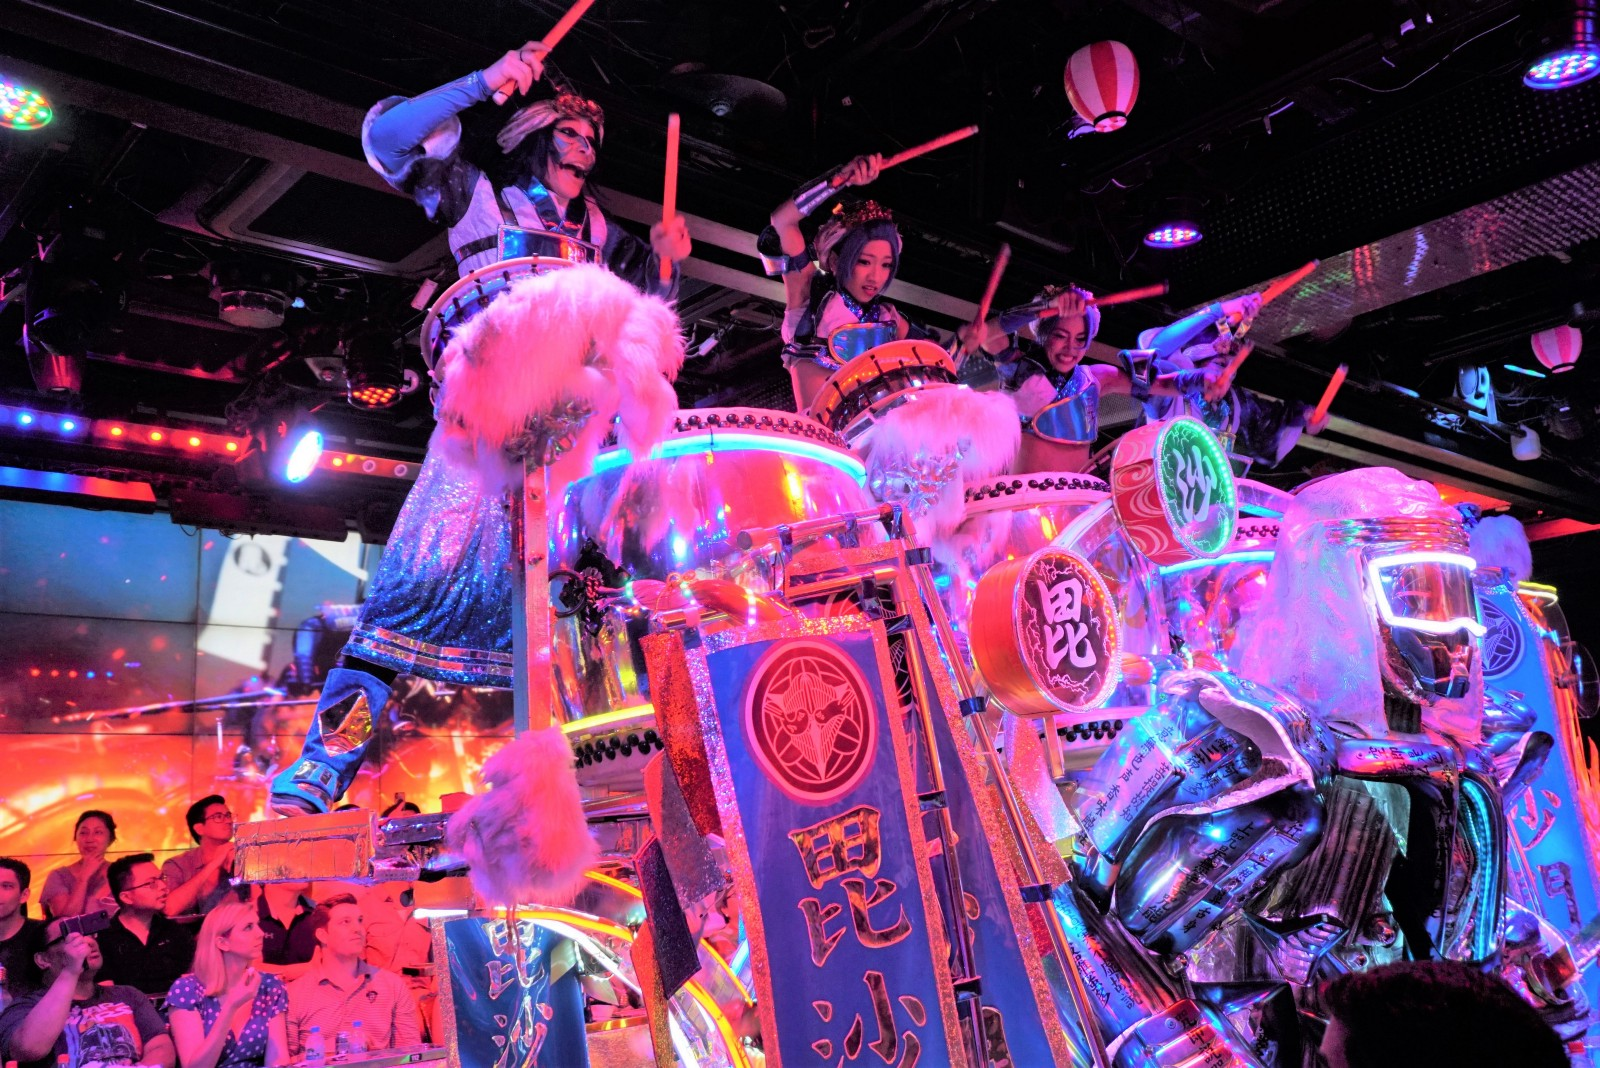 Performers at Robot Restaurant